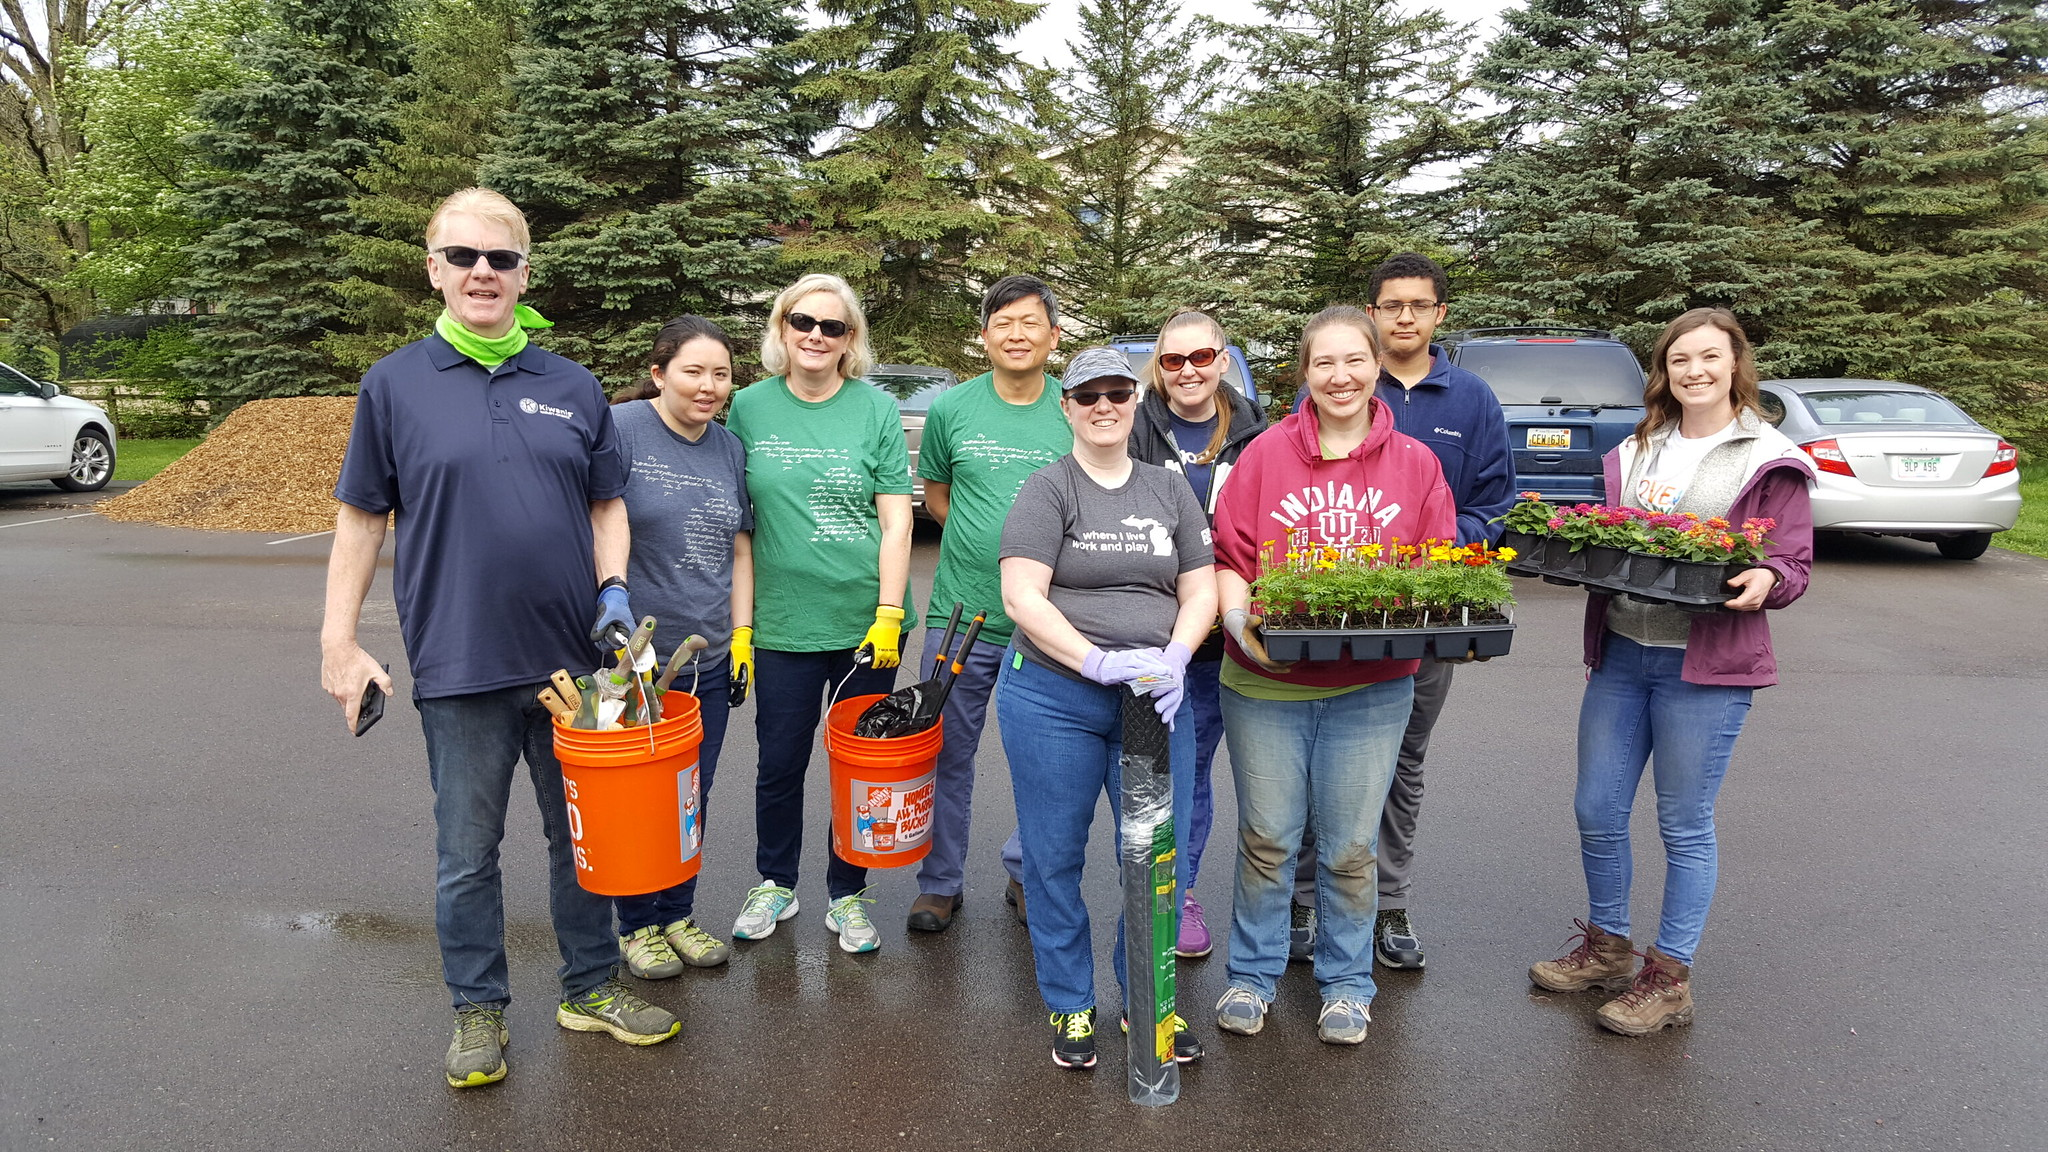 Meridian Township Hosts the 5th Annual Love a Park Day Event